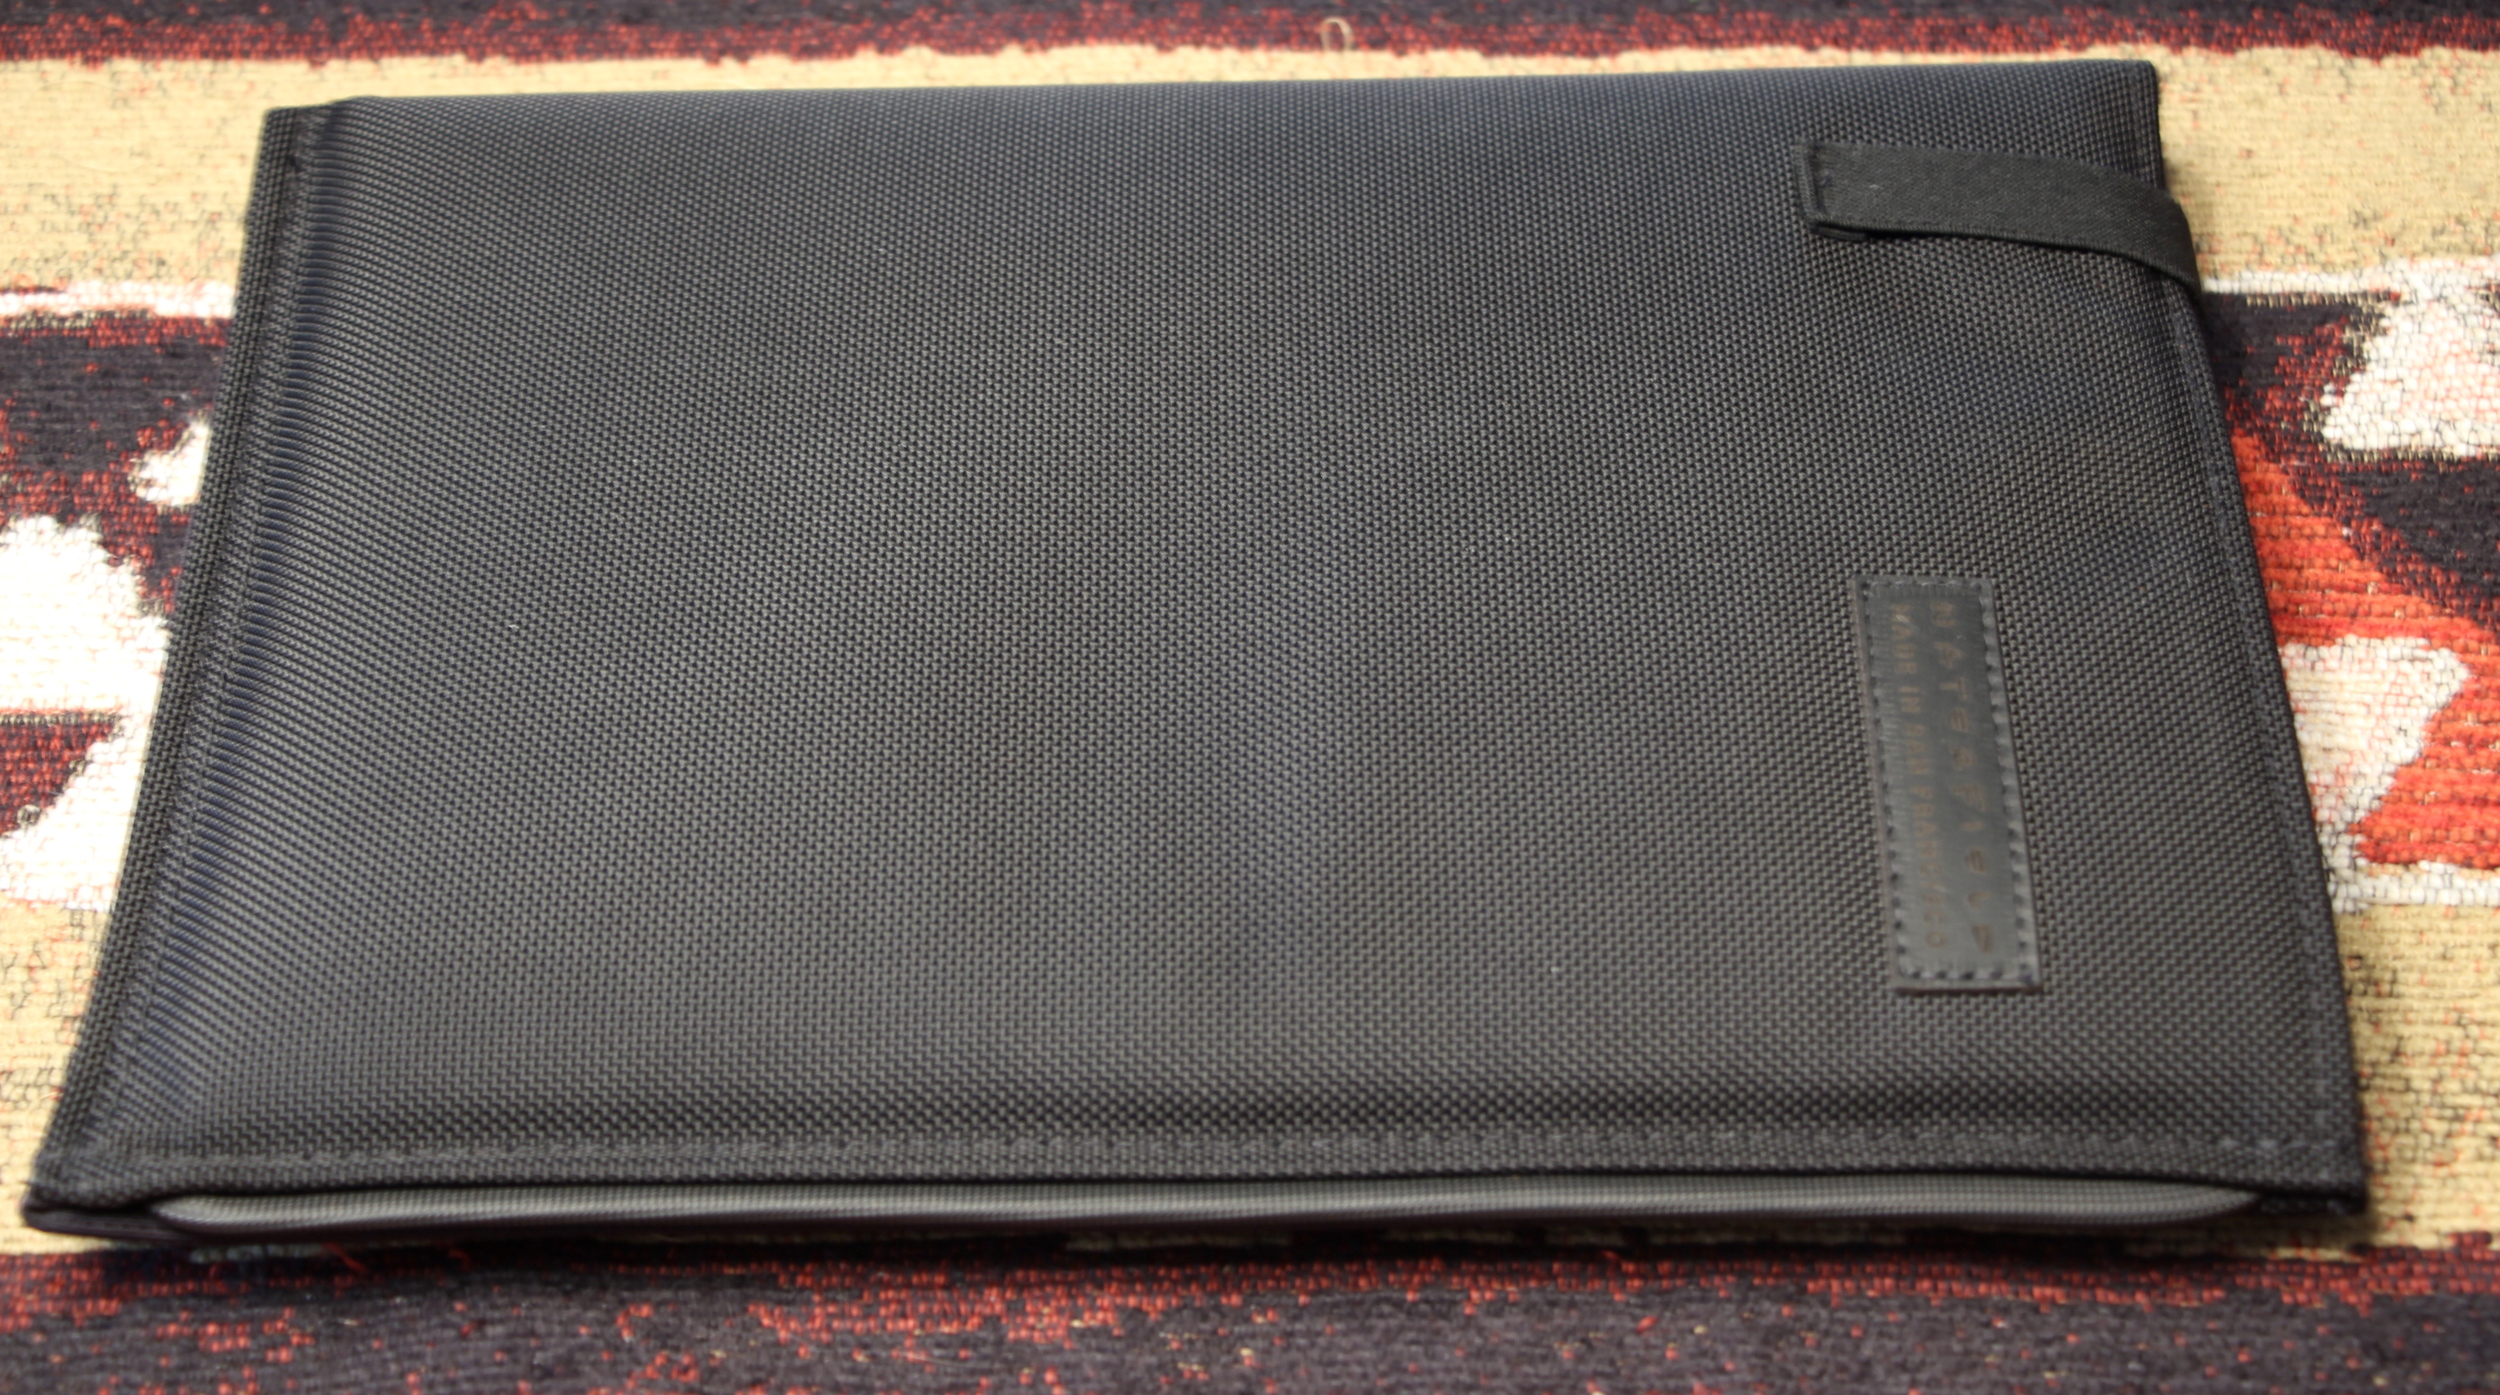 Waterfield designs dash sleeve. photo ©2015, steven sande. All rights reserved.